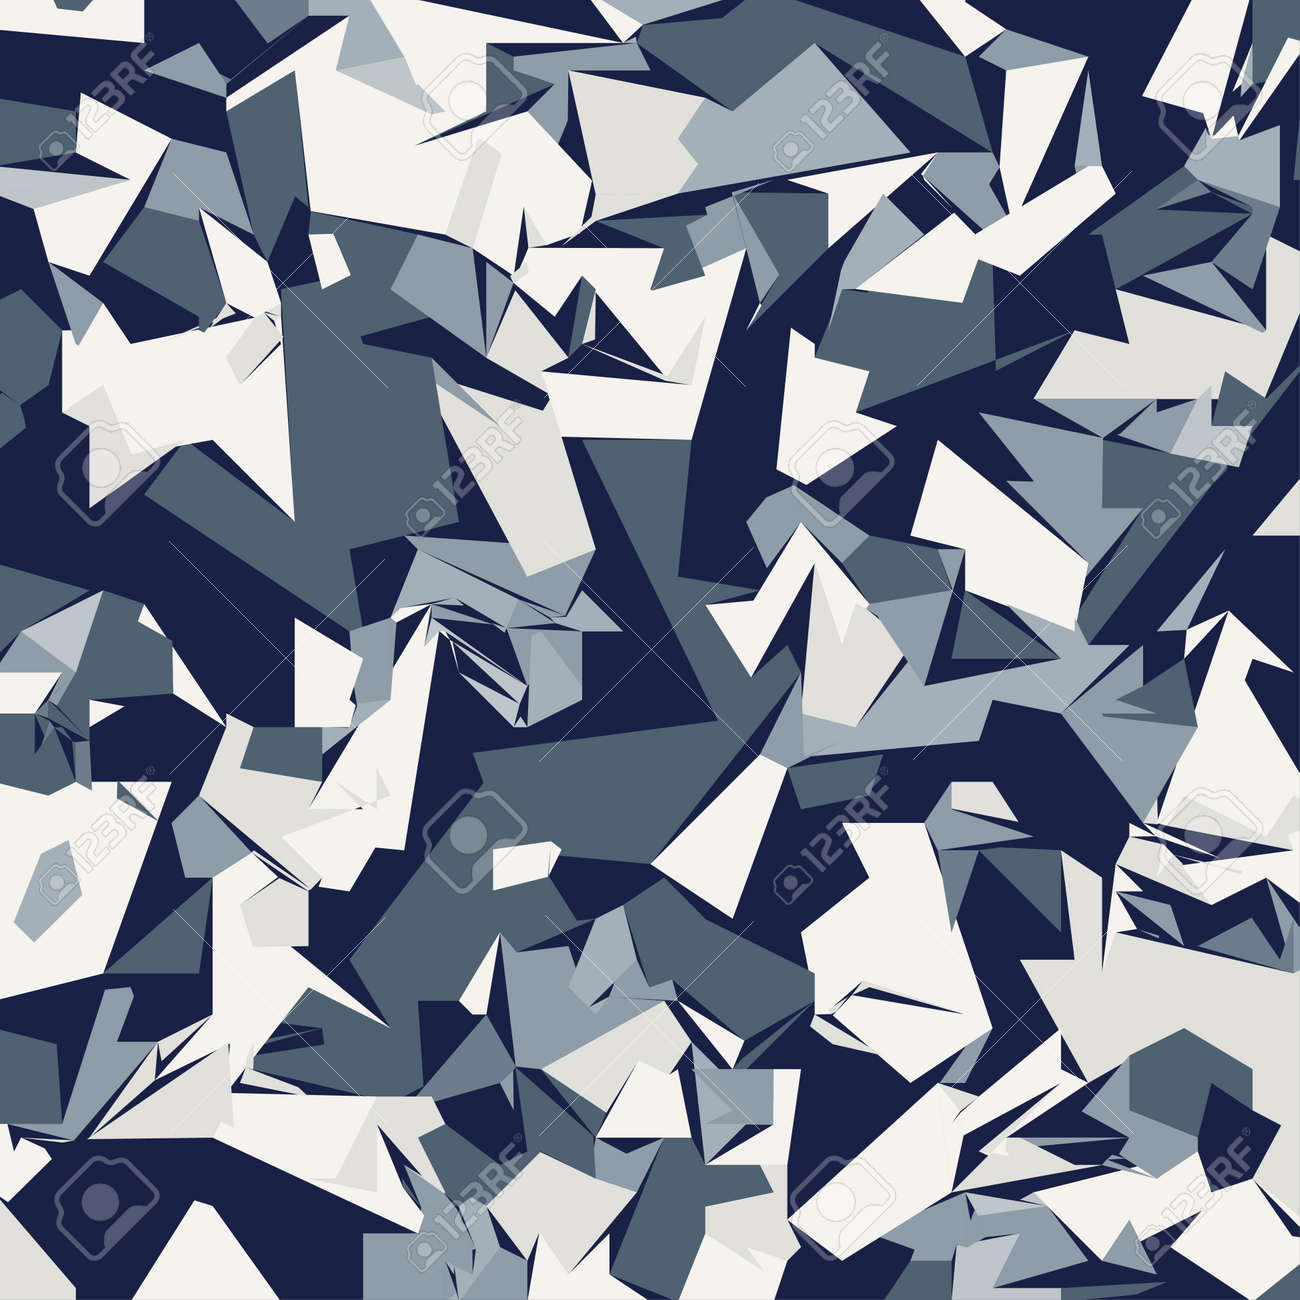 abstract vector blue military camouflage background pattern